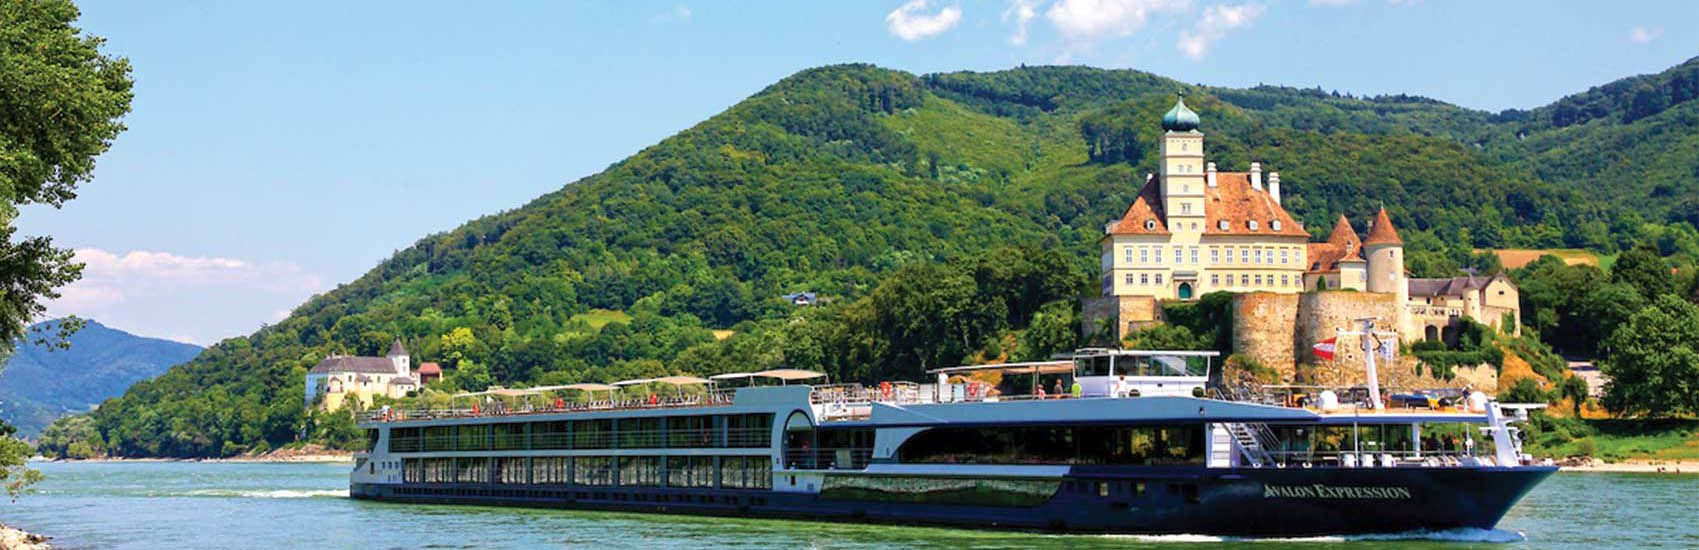 Discover Europe with Free Airfare on Avalon Waterways 4